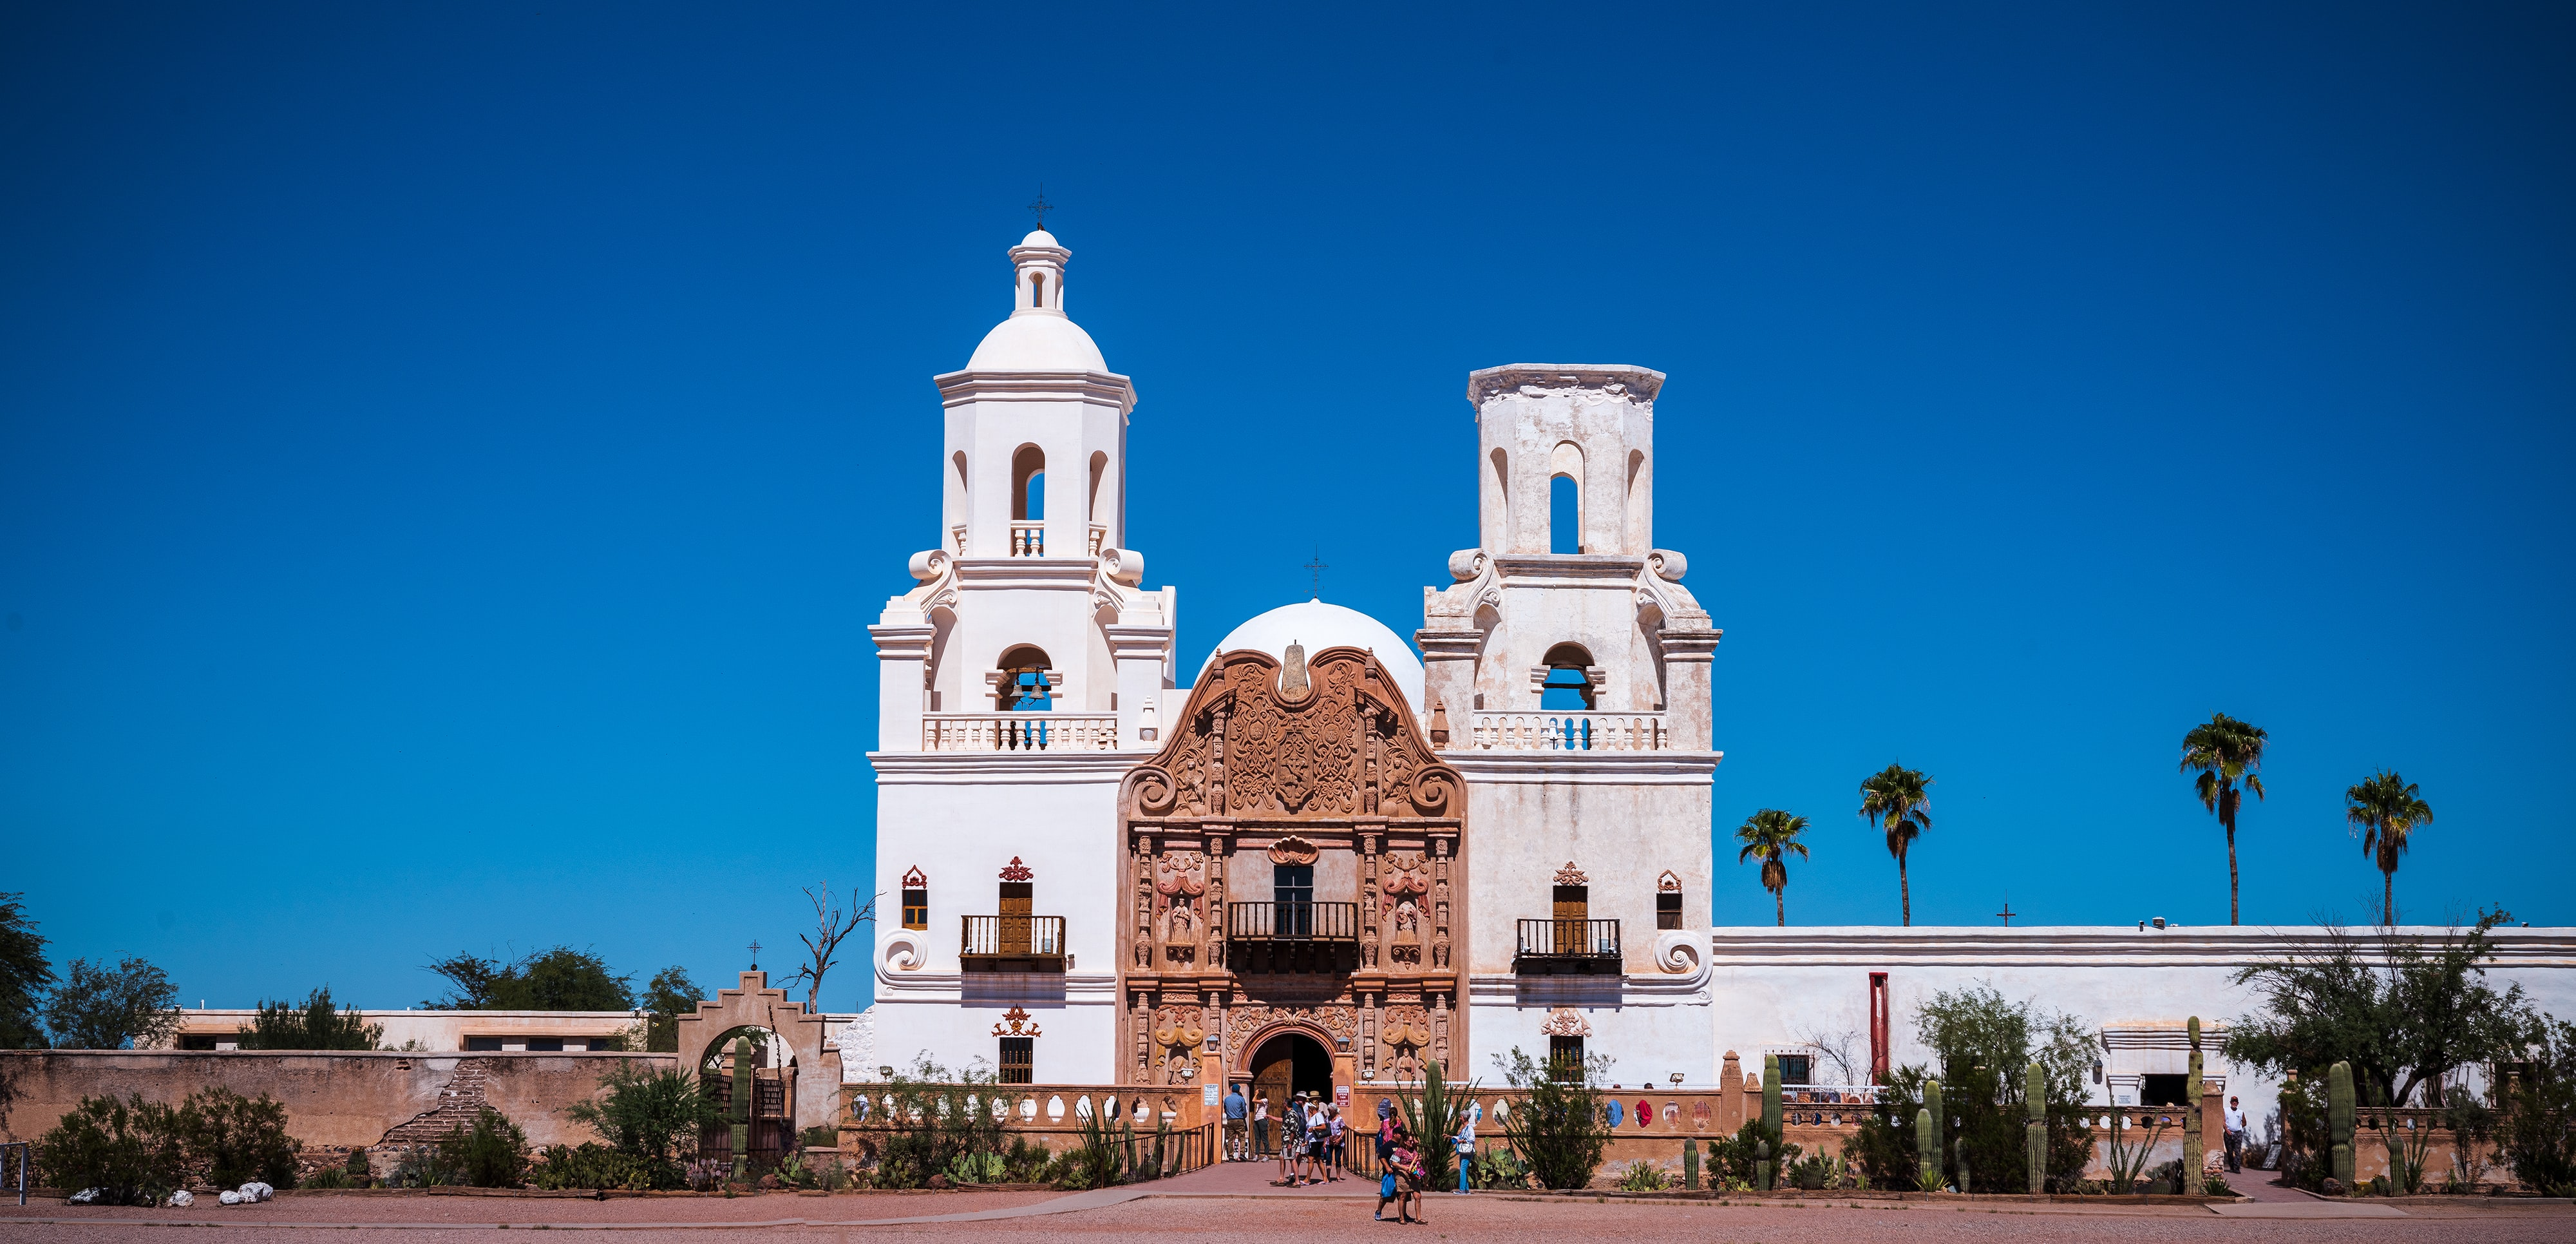 Elegant spanish mission with palm trees.